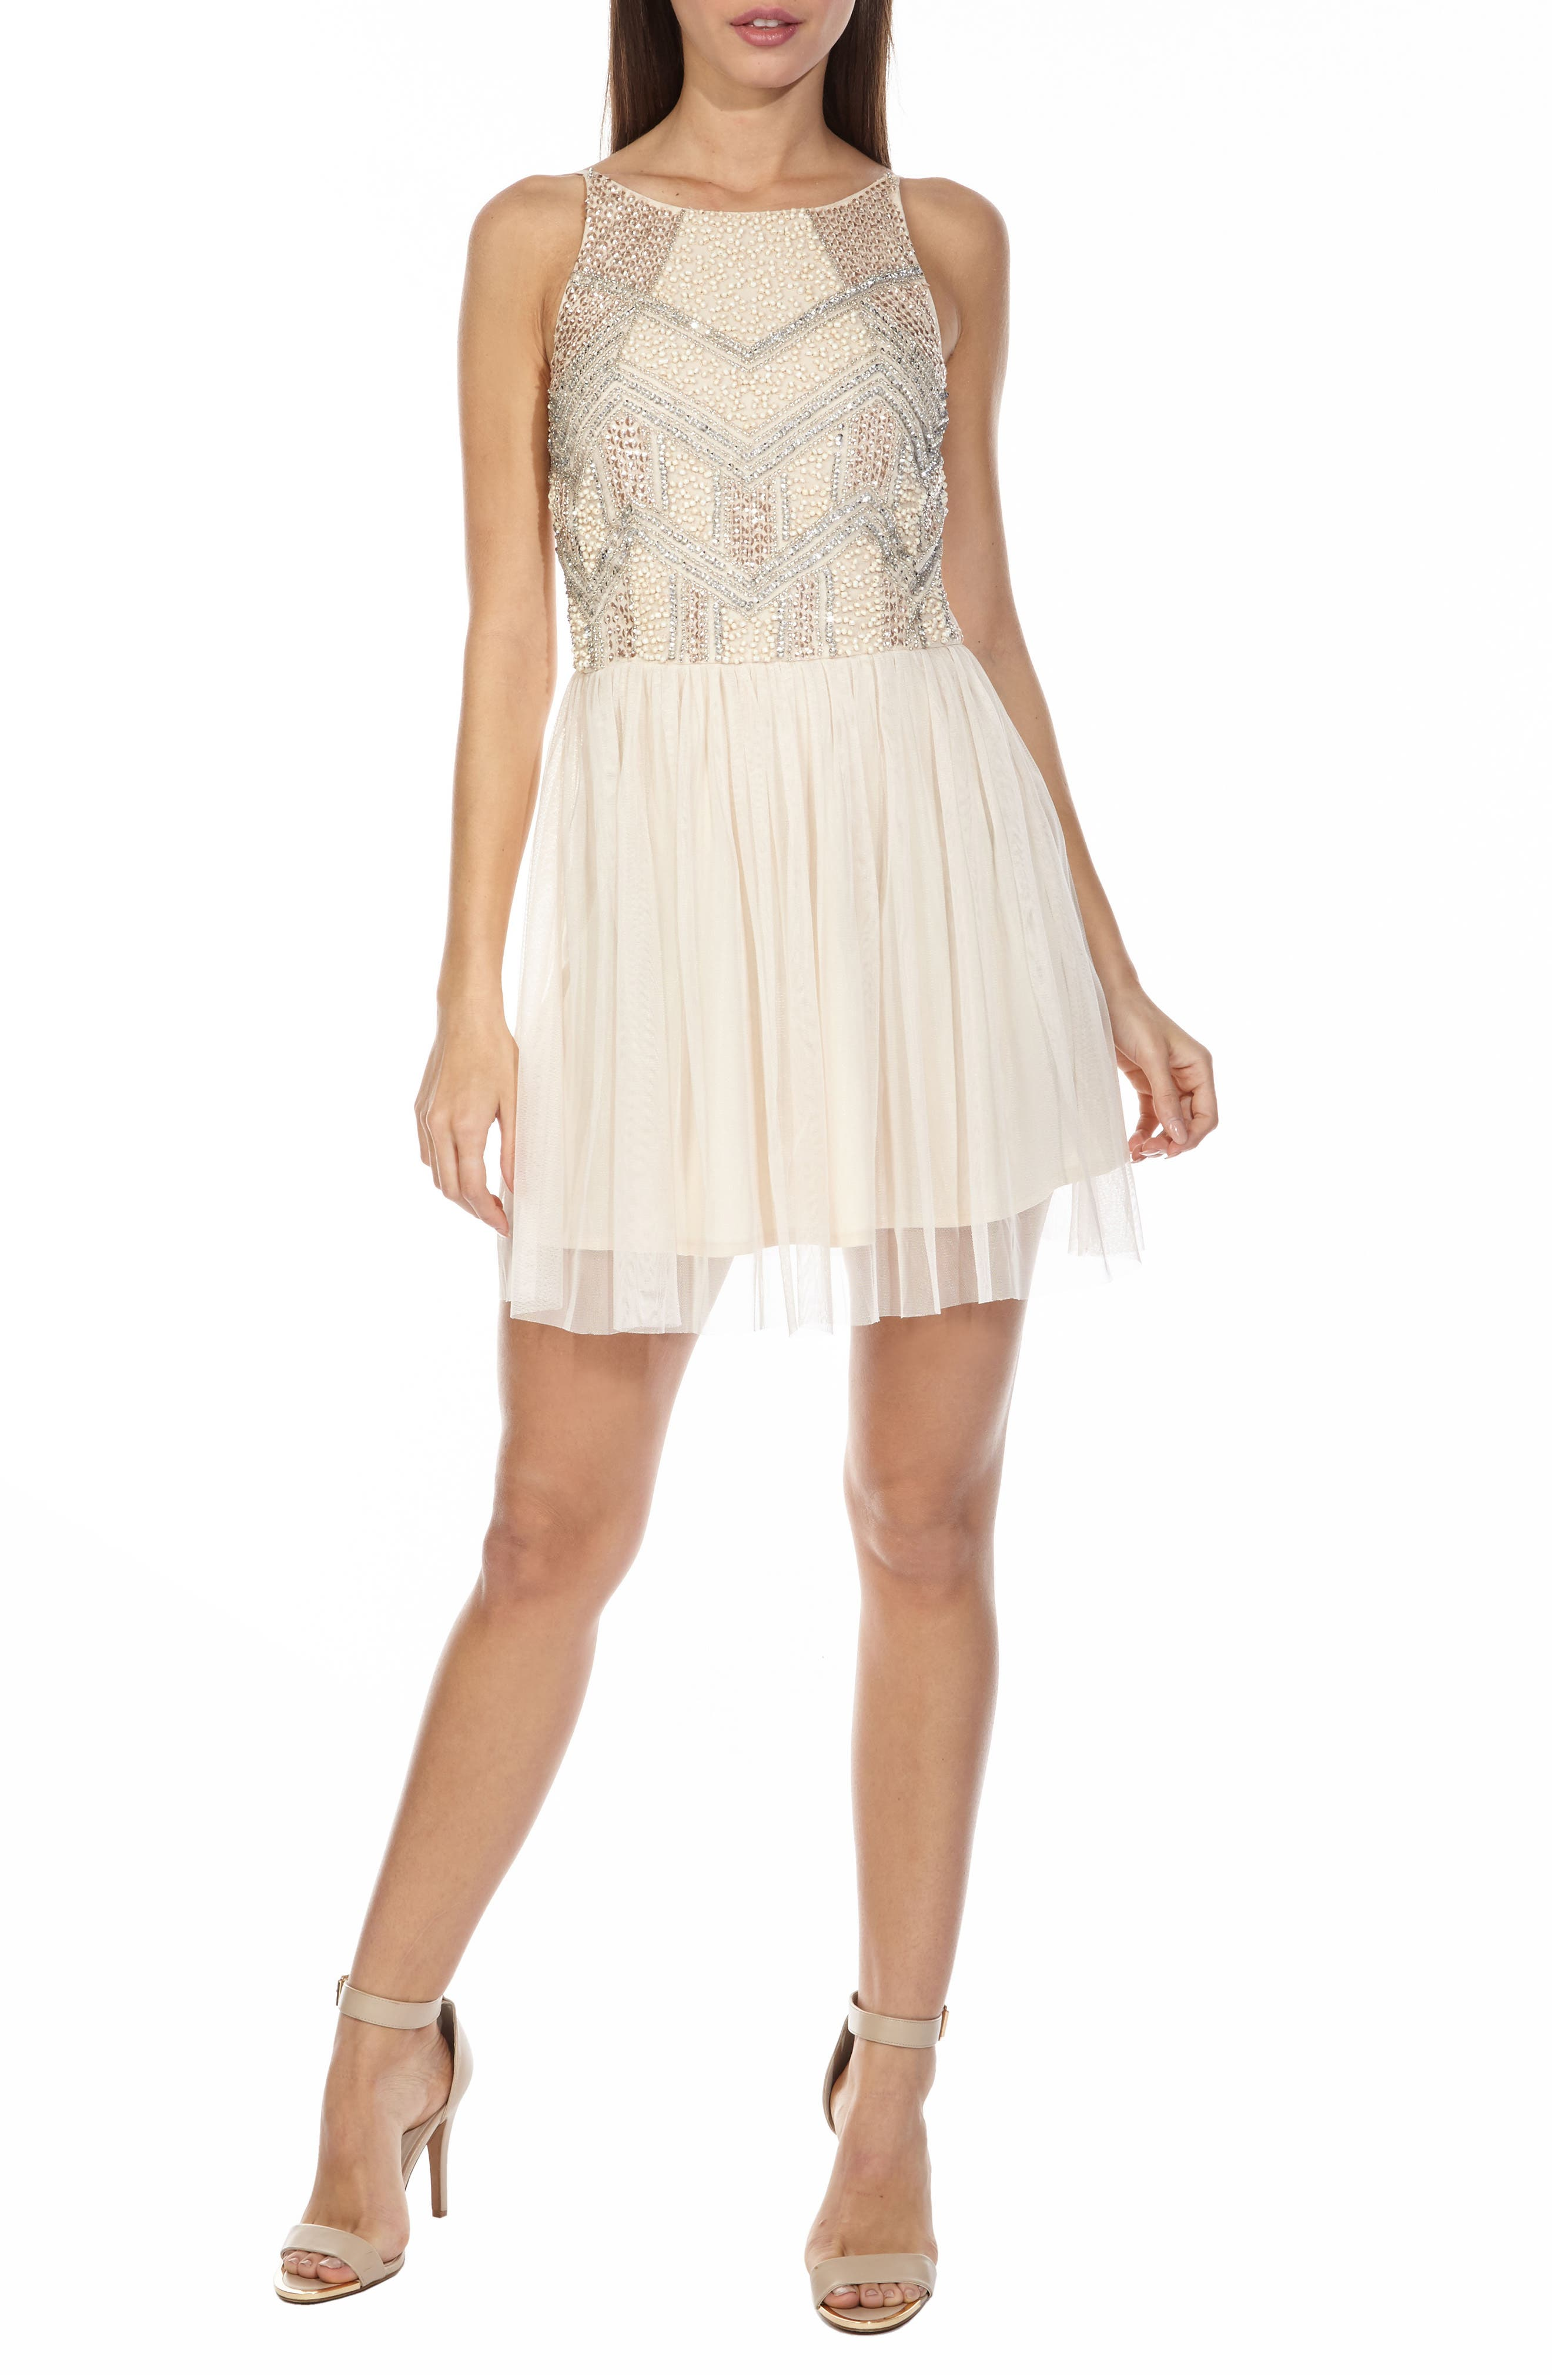 Alternate Image 1 Selected - Lace & Beads Peach Embellished Skater Dress